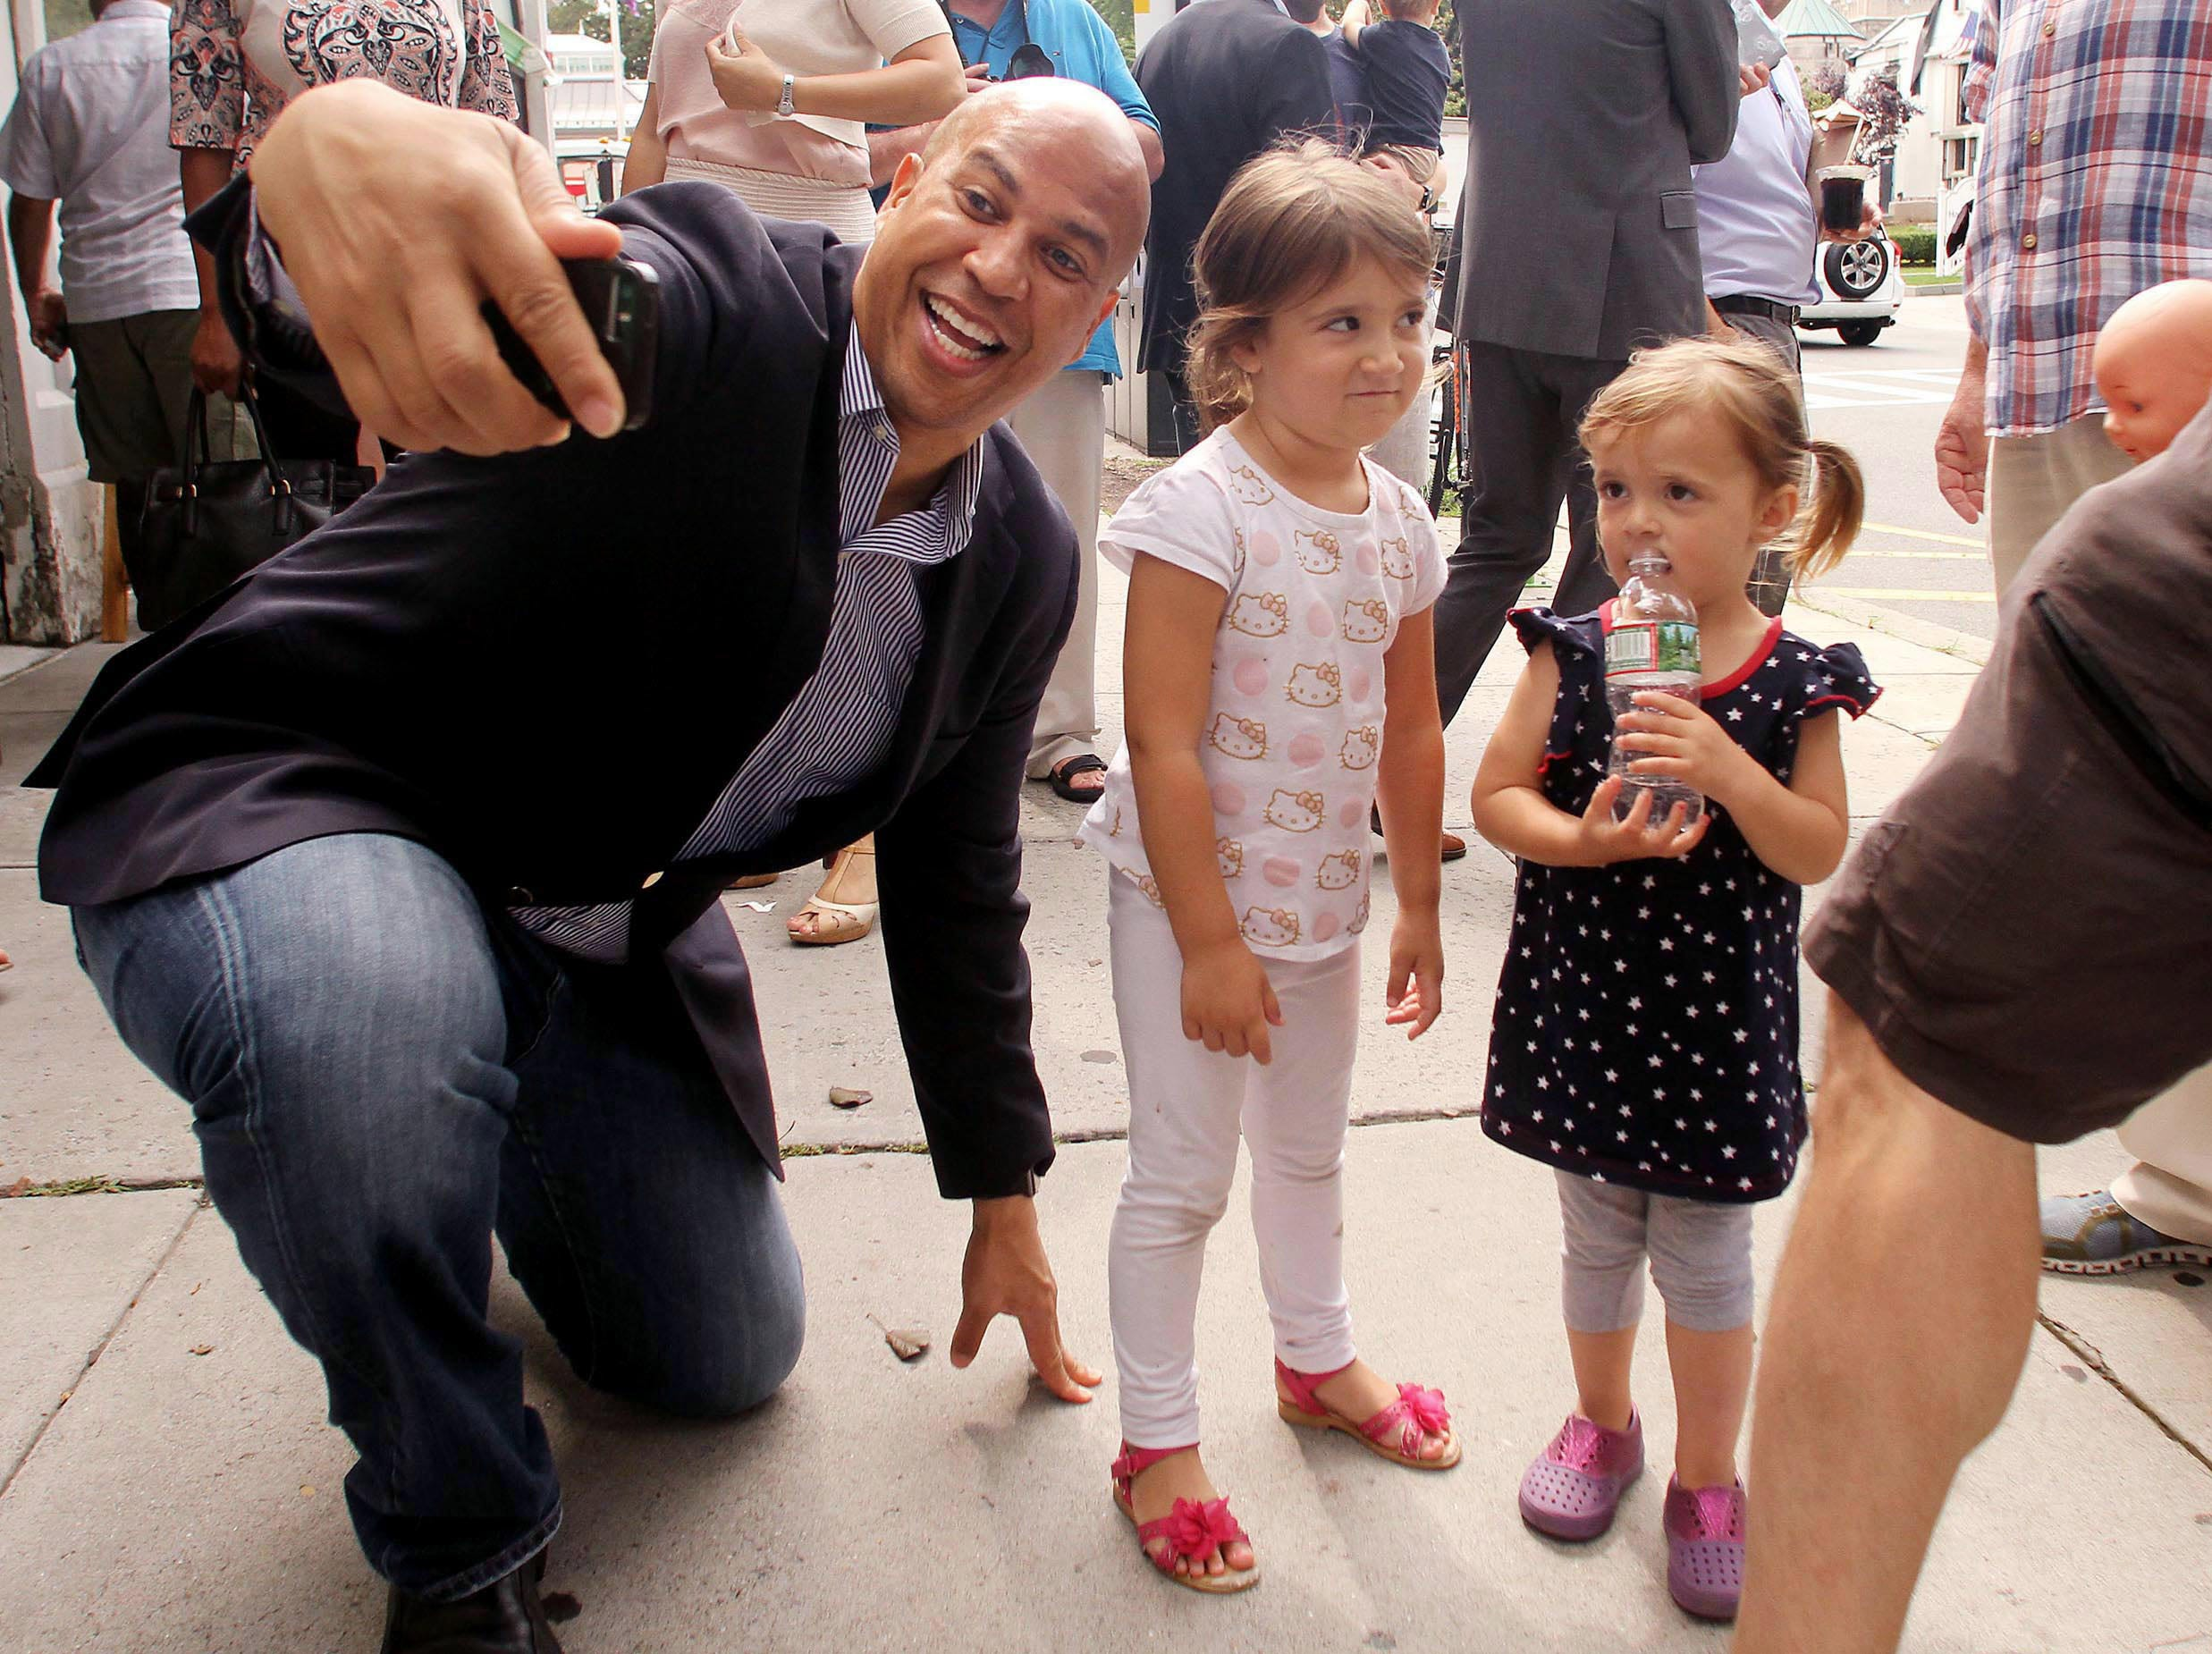 August 6, 2017--U.S. Senator Cory Booker tries unsuccessfully to get a smile while taking a selfie with a young girl during a walking tour of some of the finest small businesses in Morristown. The tour showcases a variety of businesses that all play a key role in keeping Morristown a great place to live and work.  August 5, 2017. Morristown, NJ